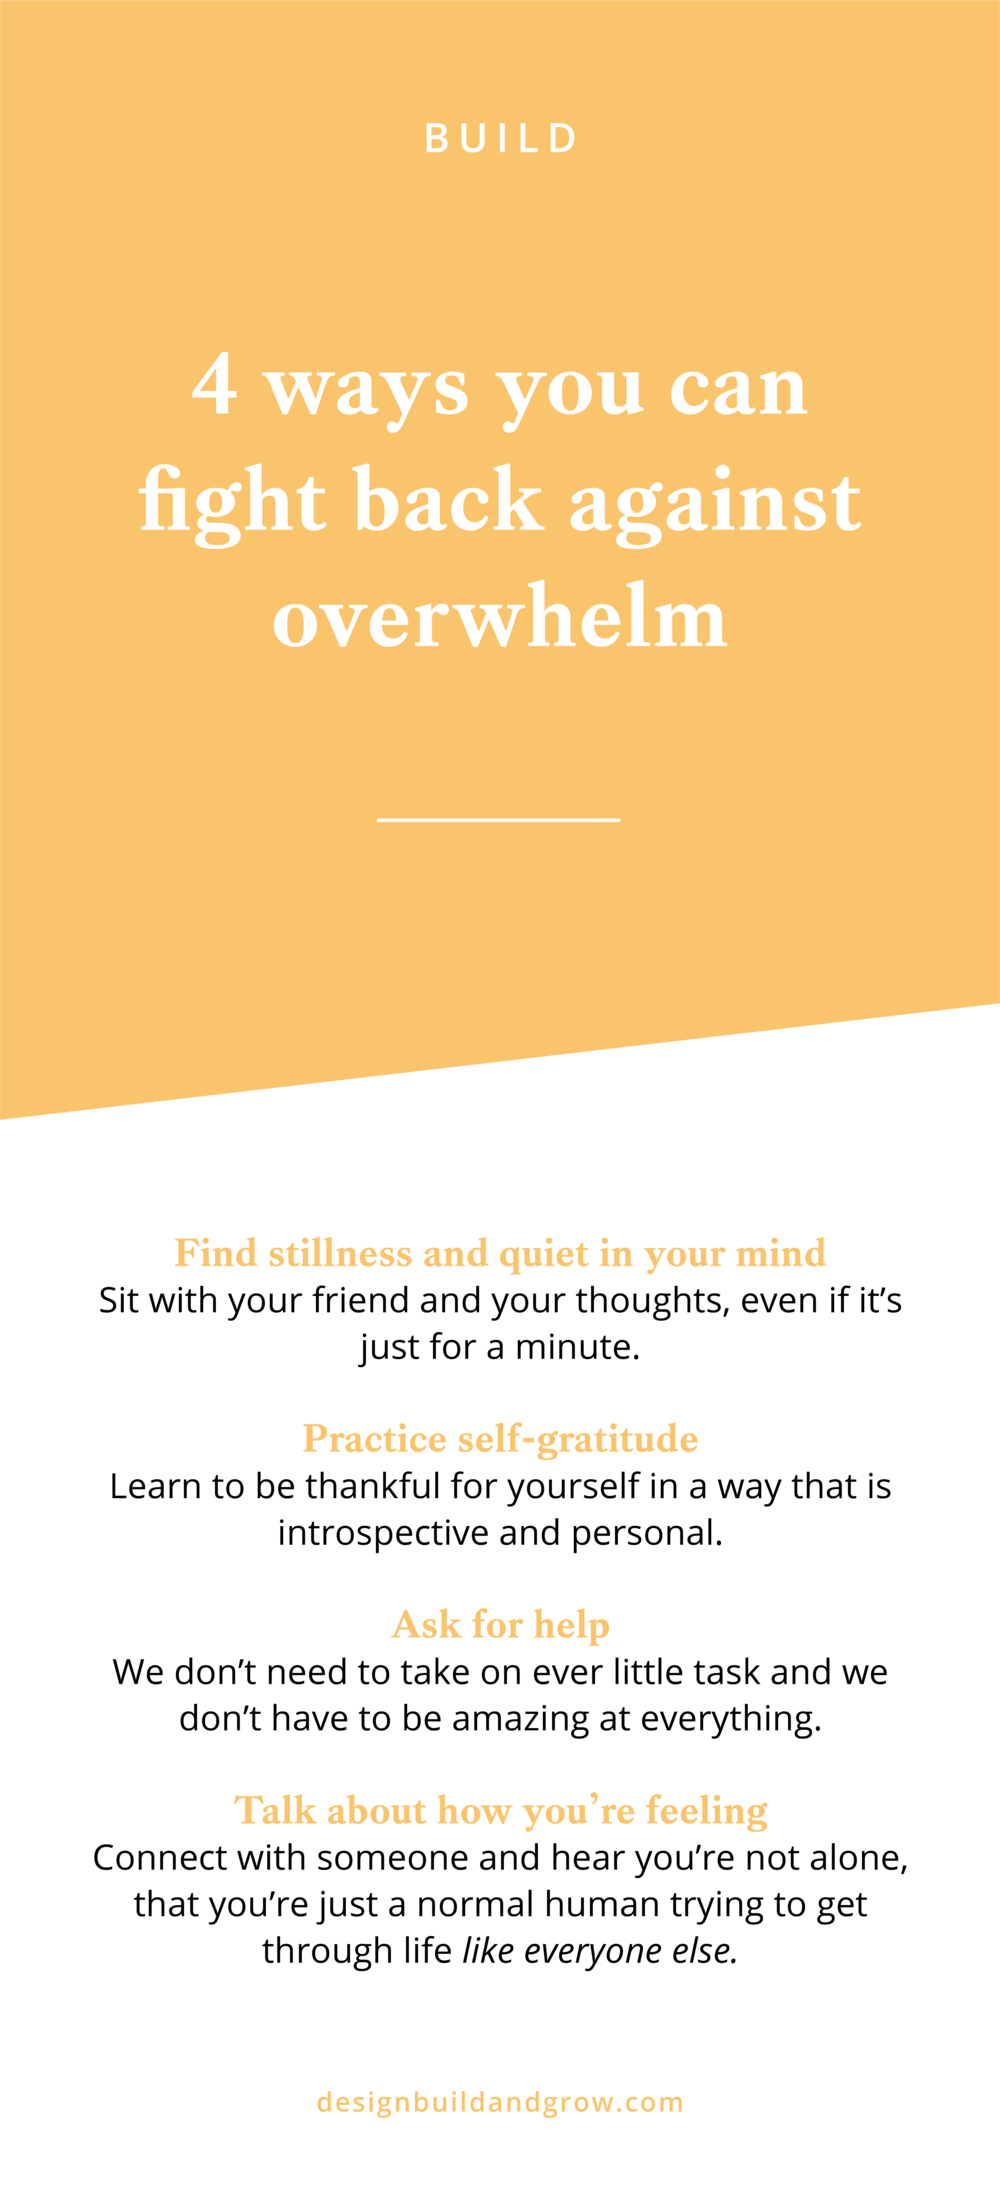 4 ways you can fight back against overwhelm